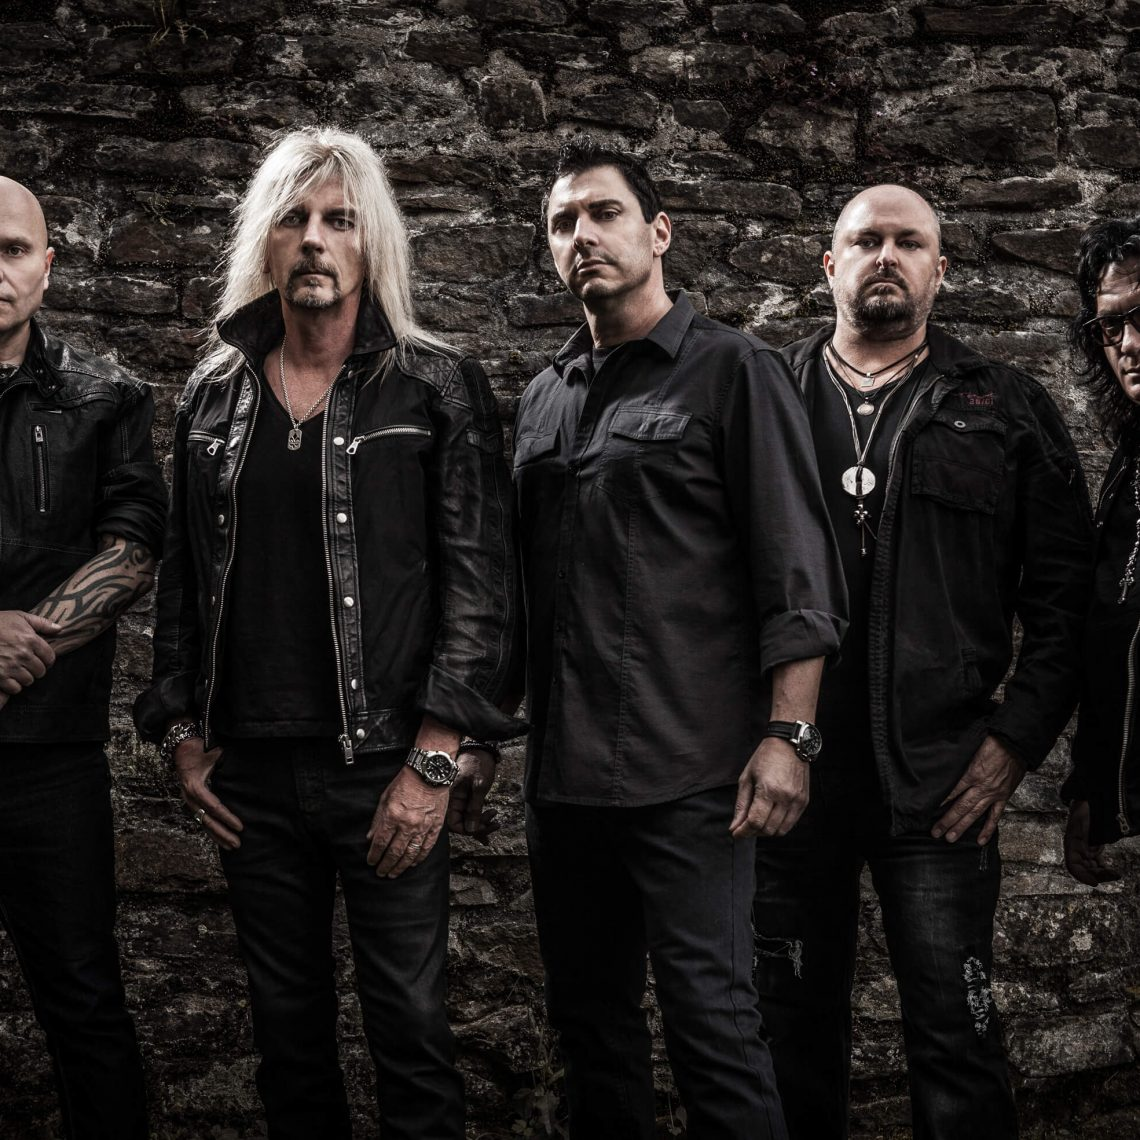 AXEL RUDI PELL releases new single and lyric video!